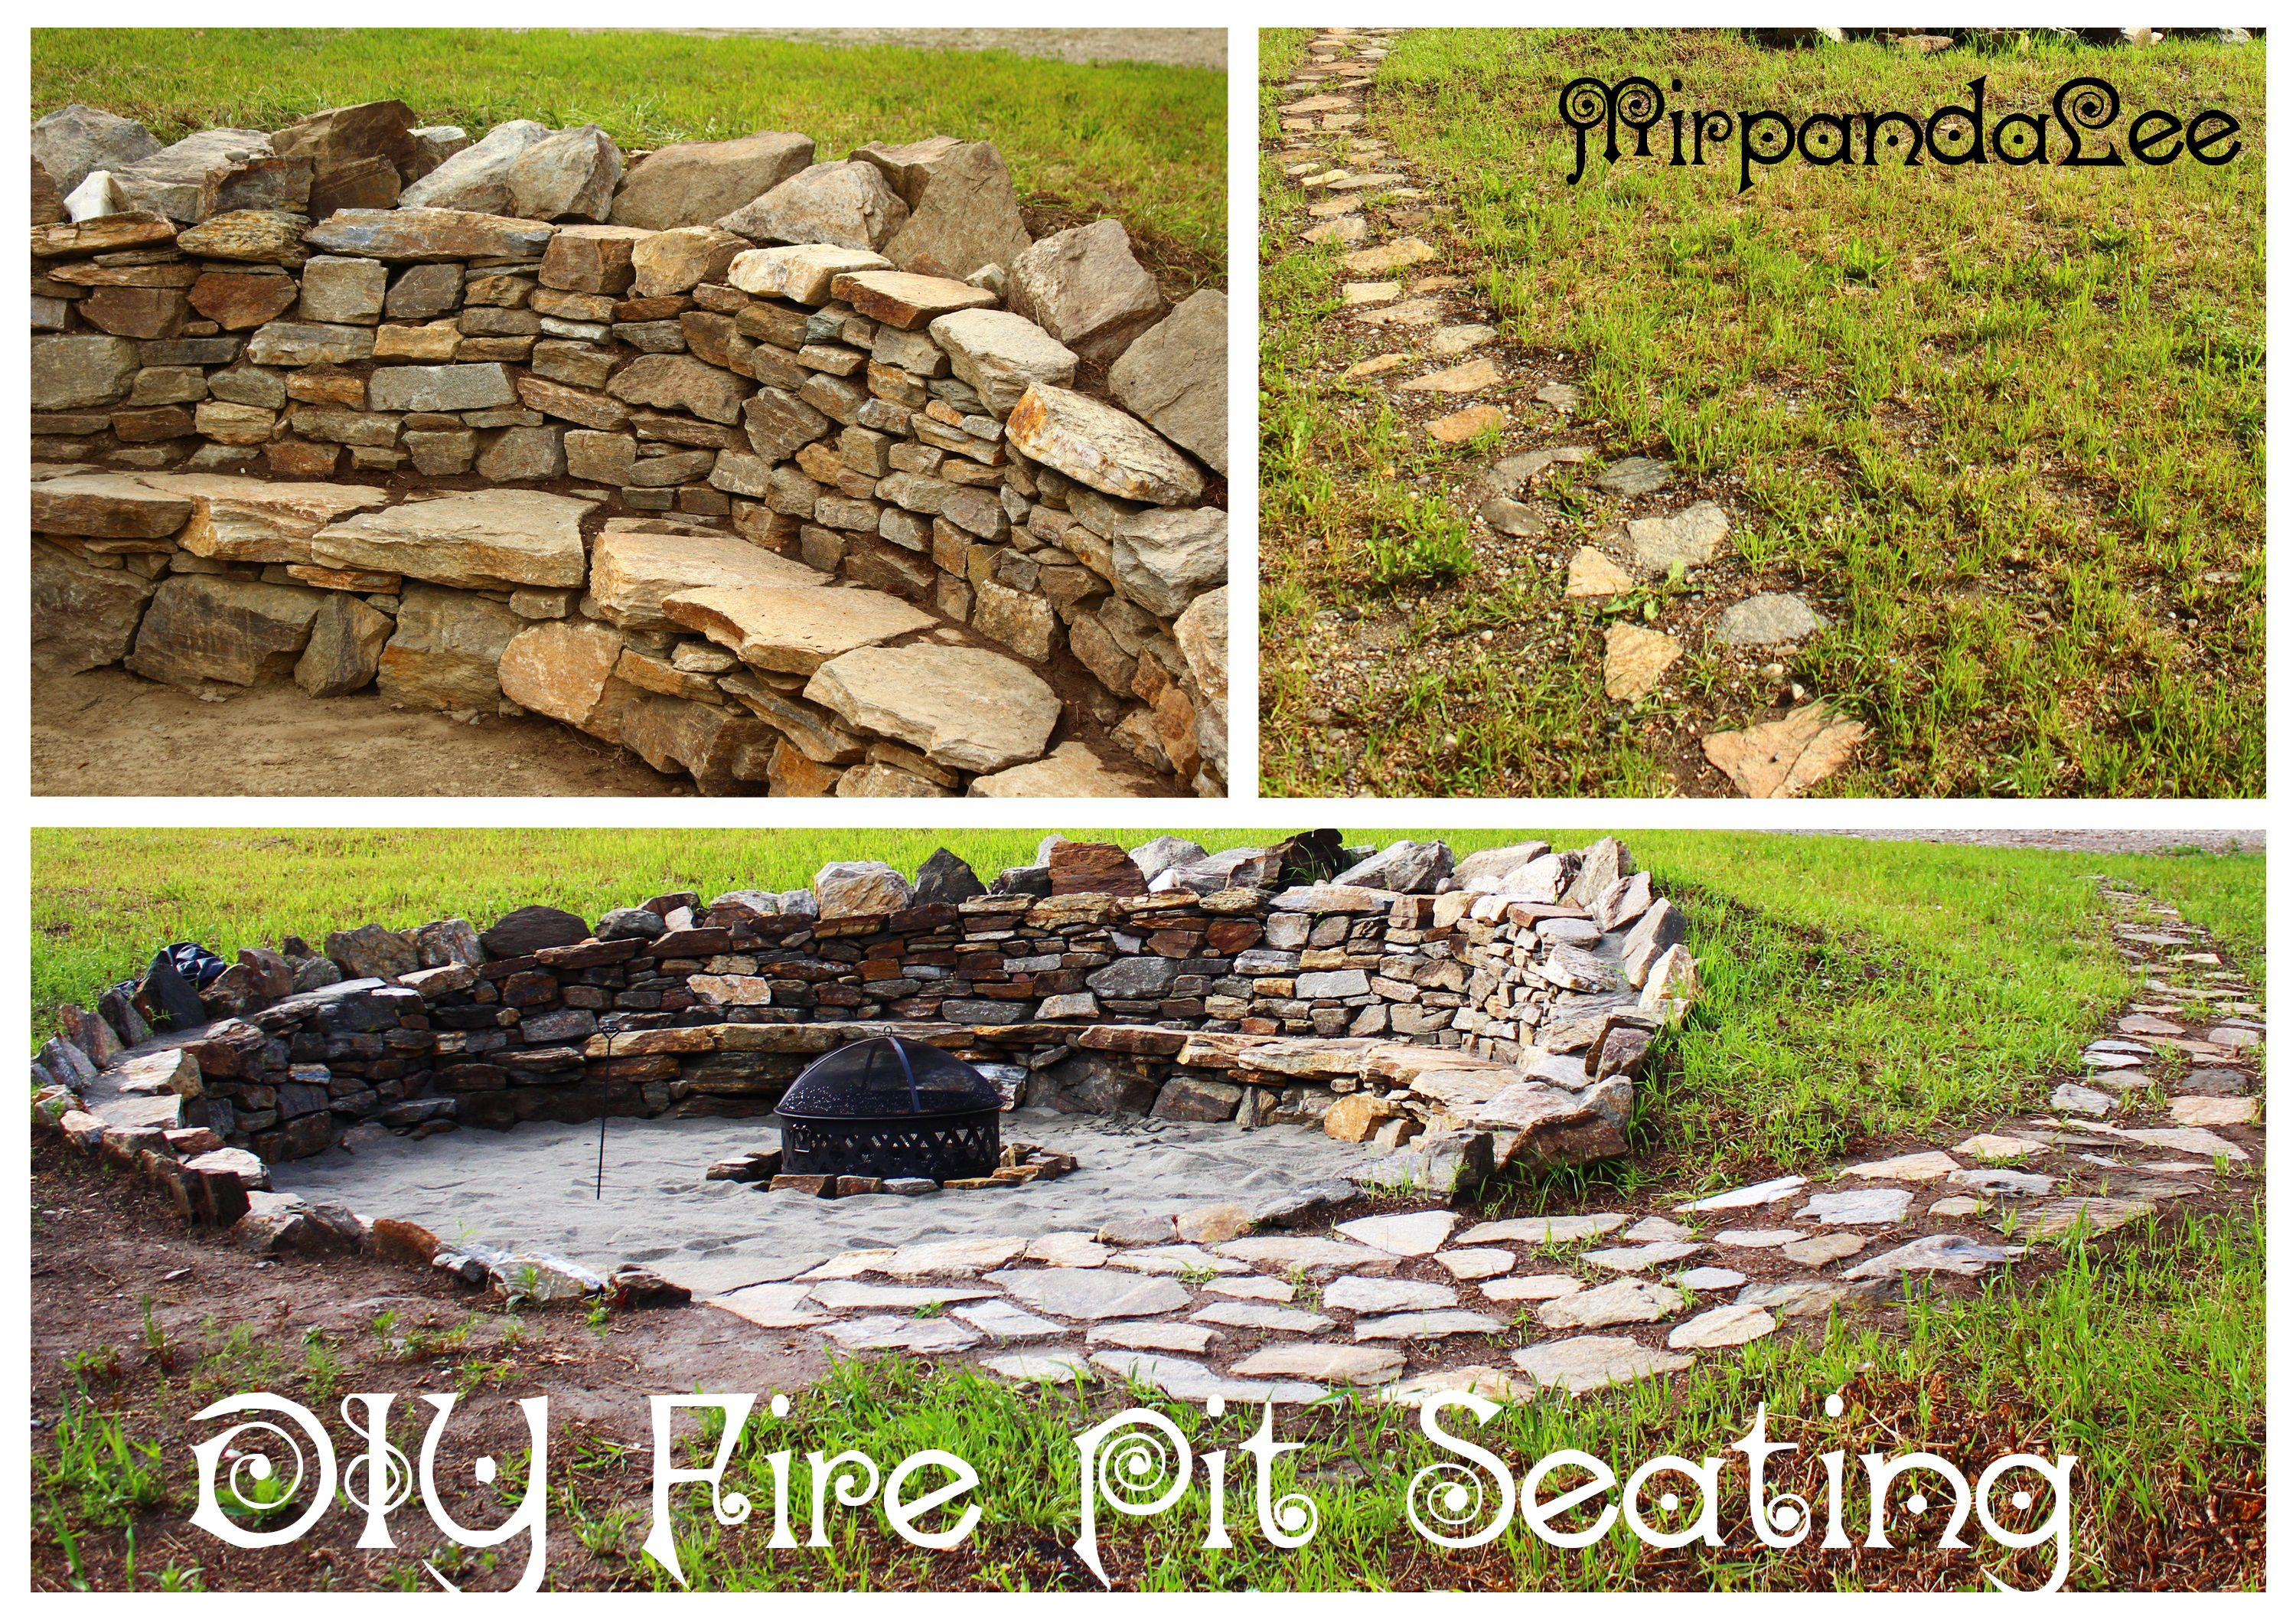 fa23d17edbfff9d47d24239c0caffee4 Top Result 50 Awesome Diy Metal Fire Pit Image 2018 Sjd8